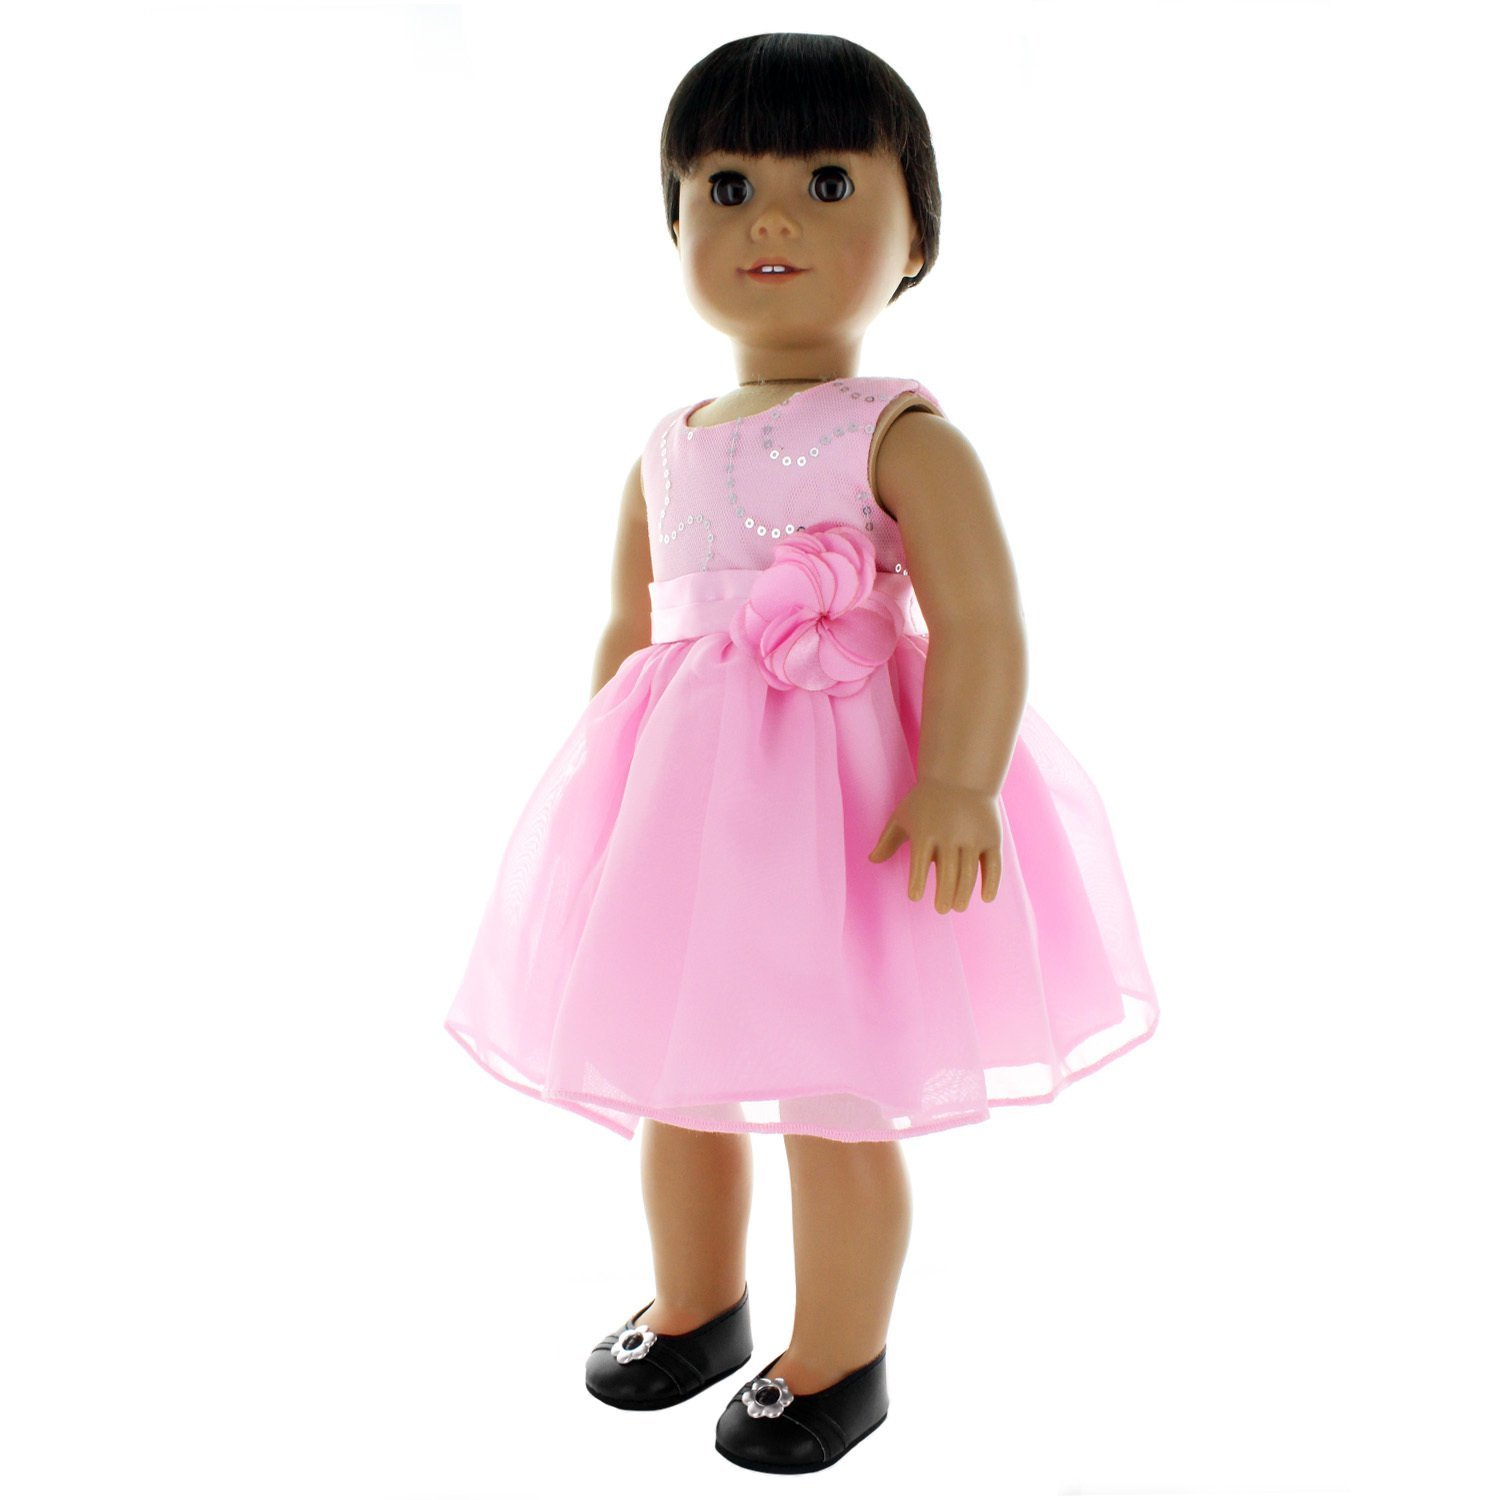 Doll Clothes Flowers Dresse Outfit Fits American Girl & Other 18 Inch Dolls by Pink Butterfly Closet